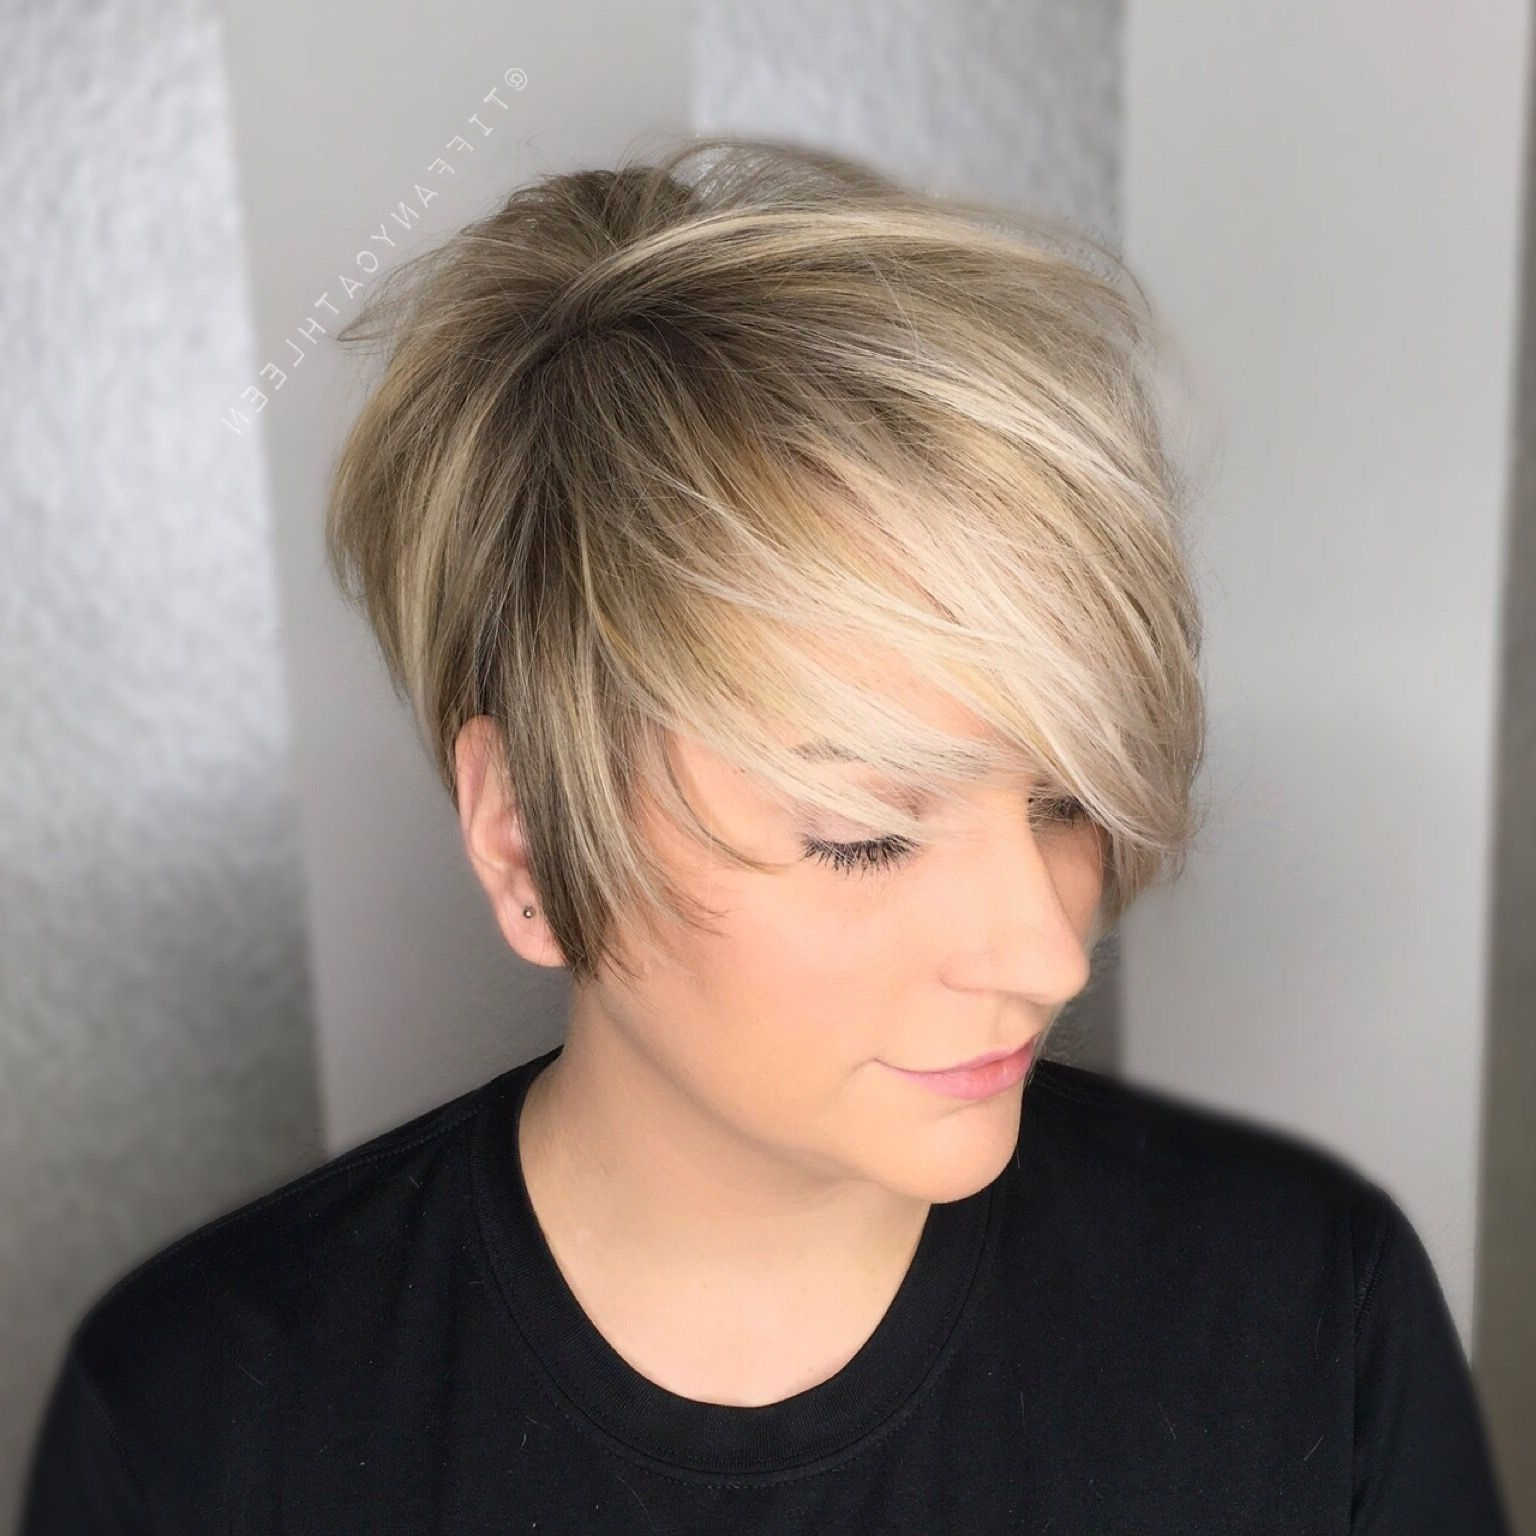 Gorgeous Blonde Balayage On A Textured Pixie Cut | My Hairstyles Regarding Current Disconnected Blonde Balayage Pixie Haircuts (Gallery 15 of 15)